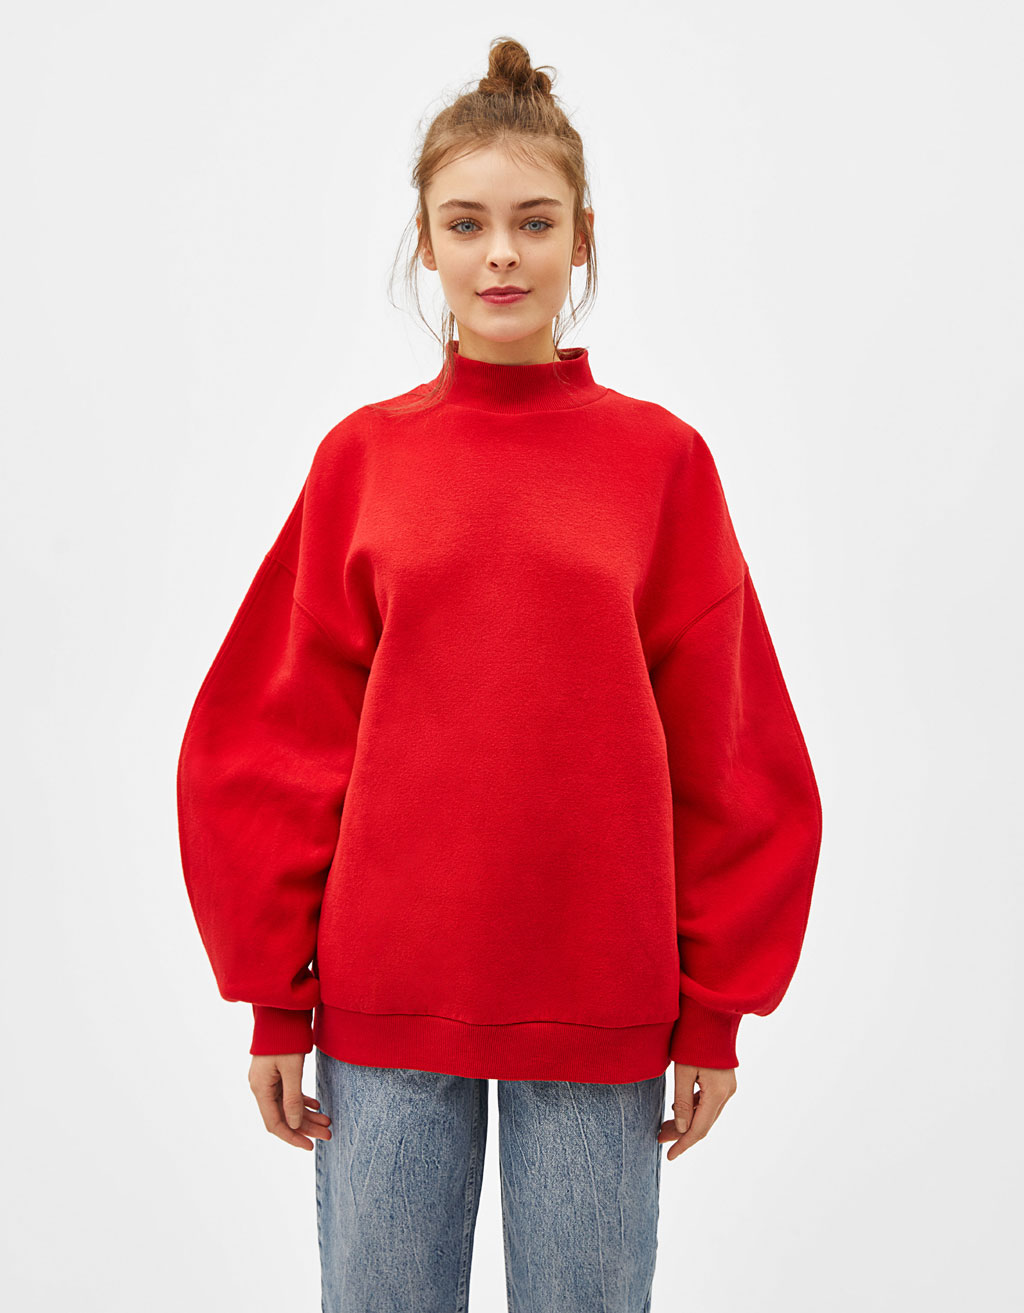 High neck sweatshirt